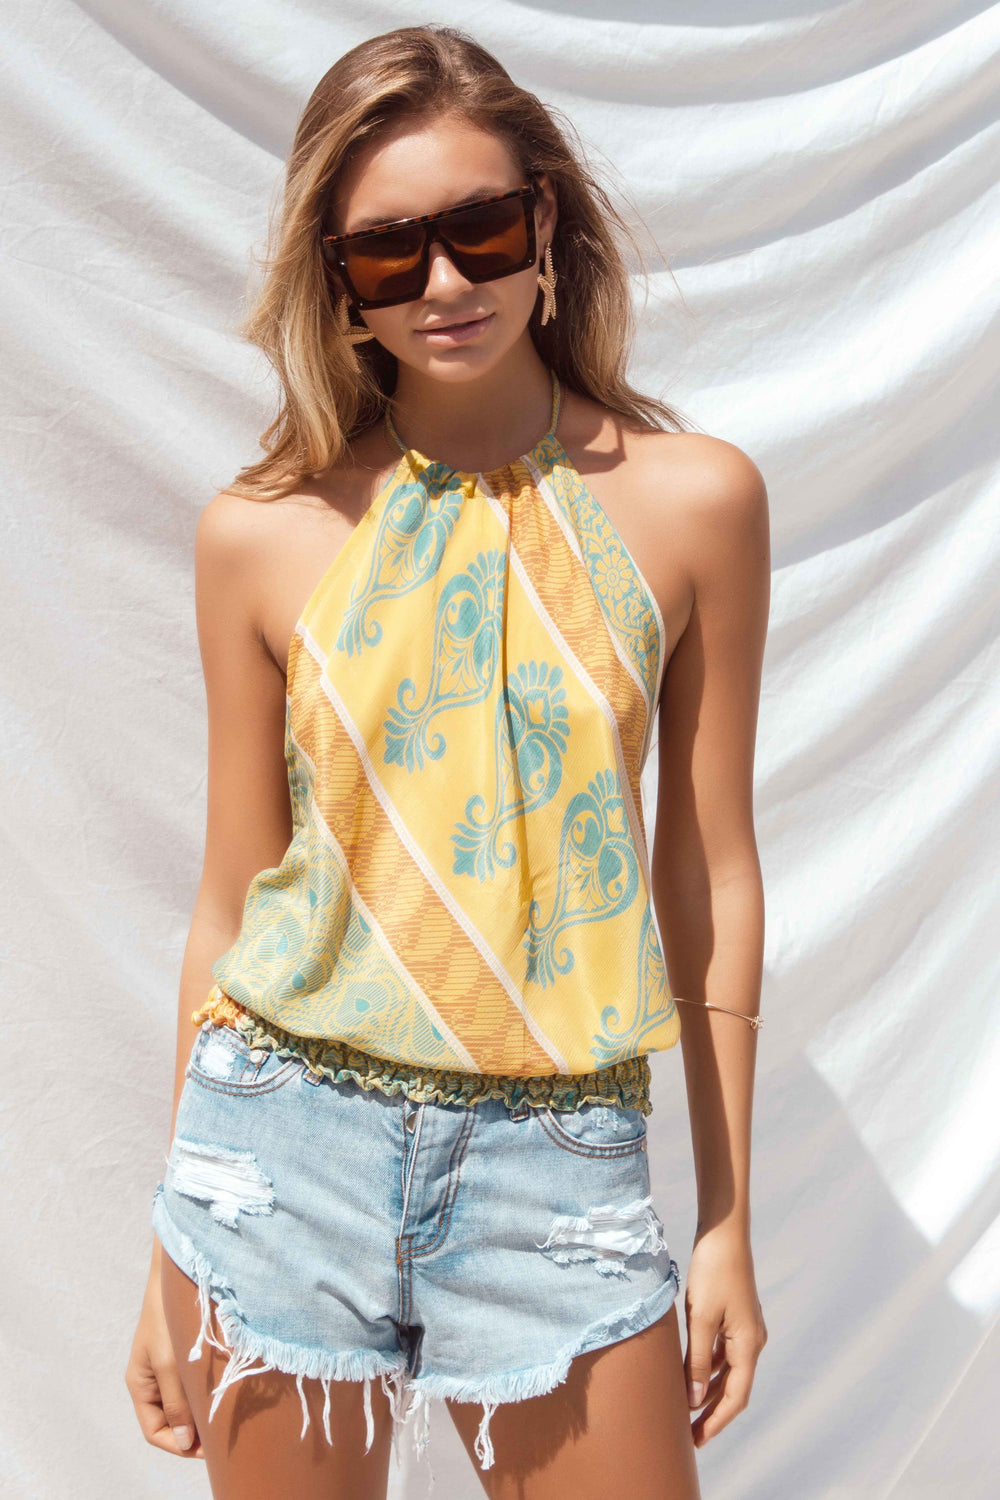 BELLE TOP IN YELLOW | Women's Online Shopping | CHICLEFRIQUE